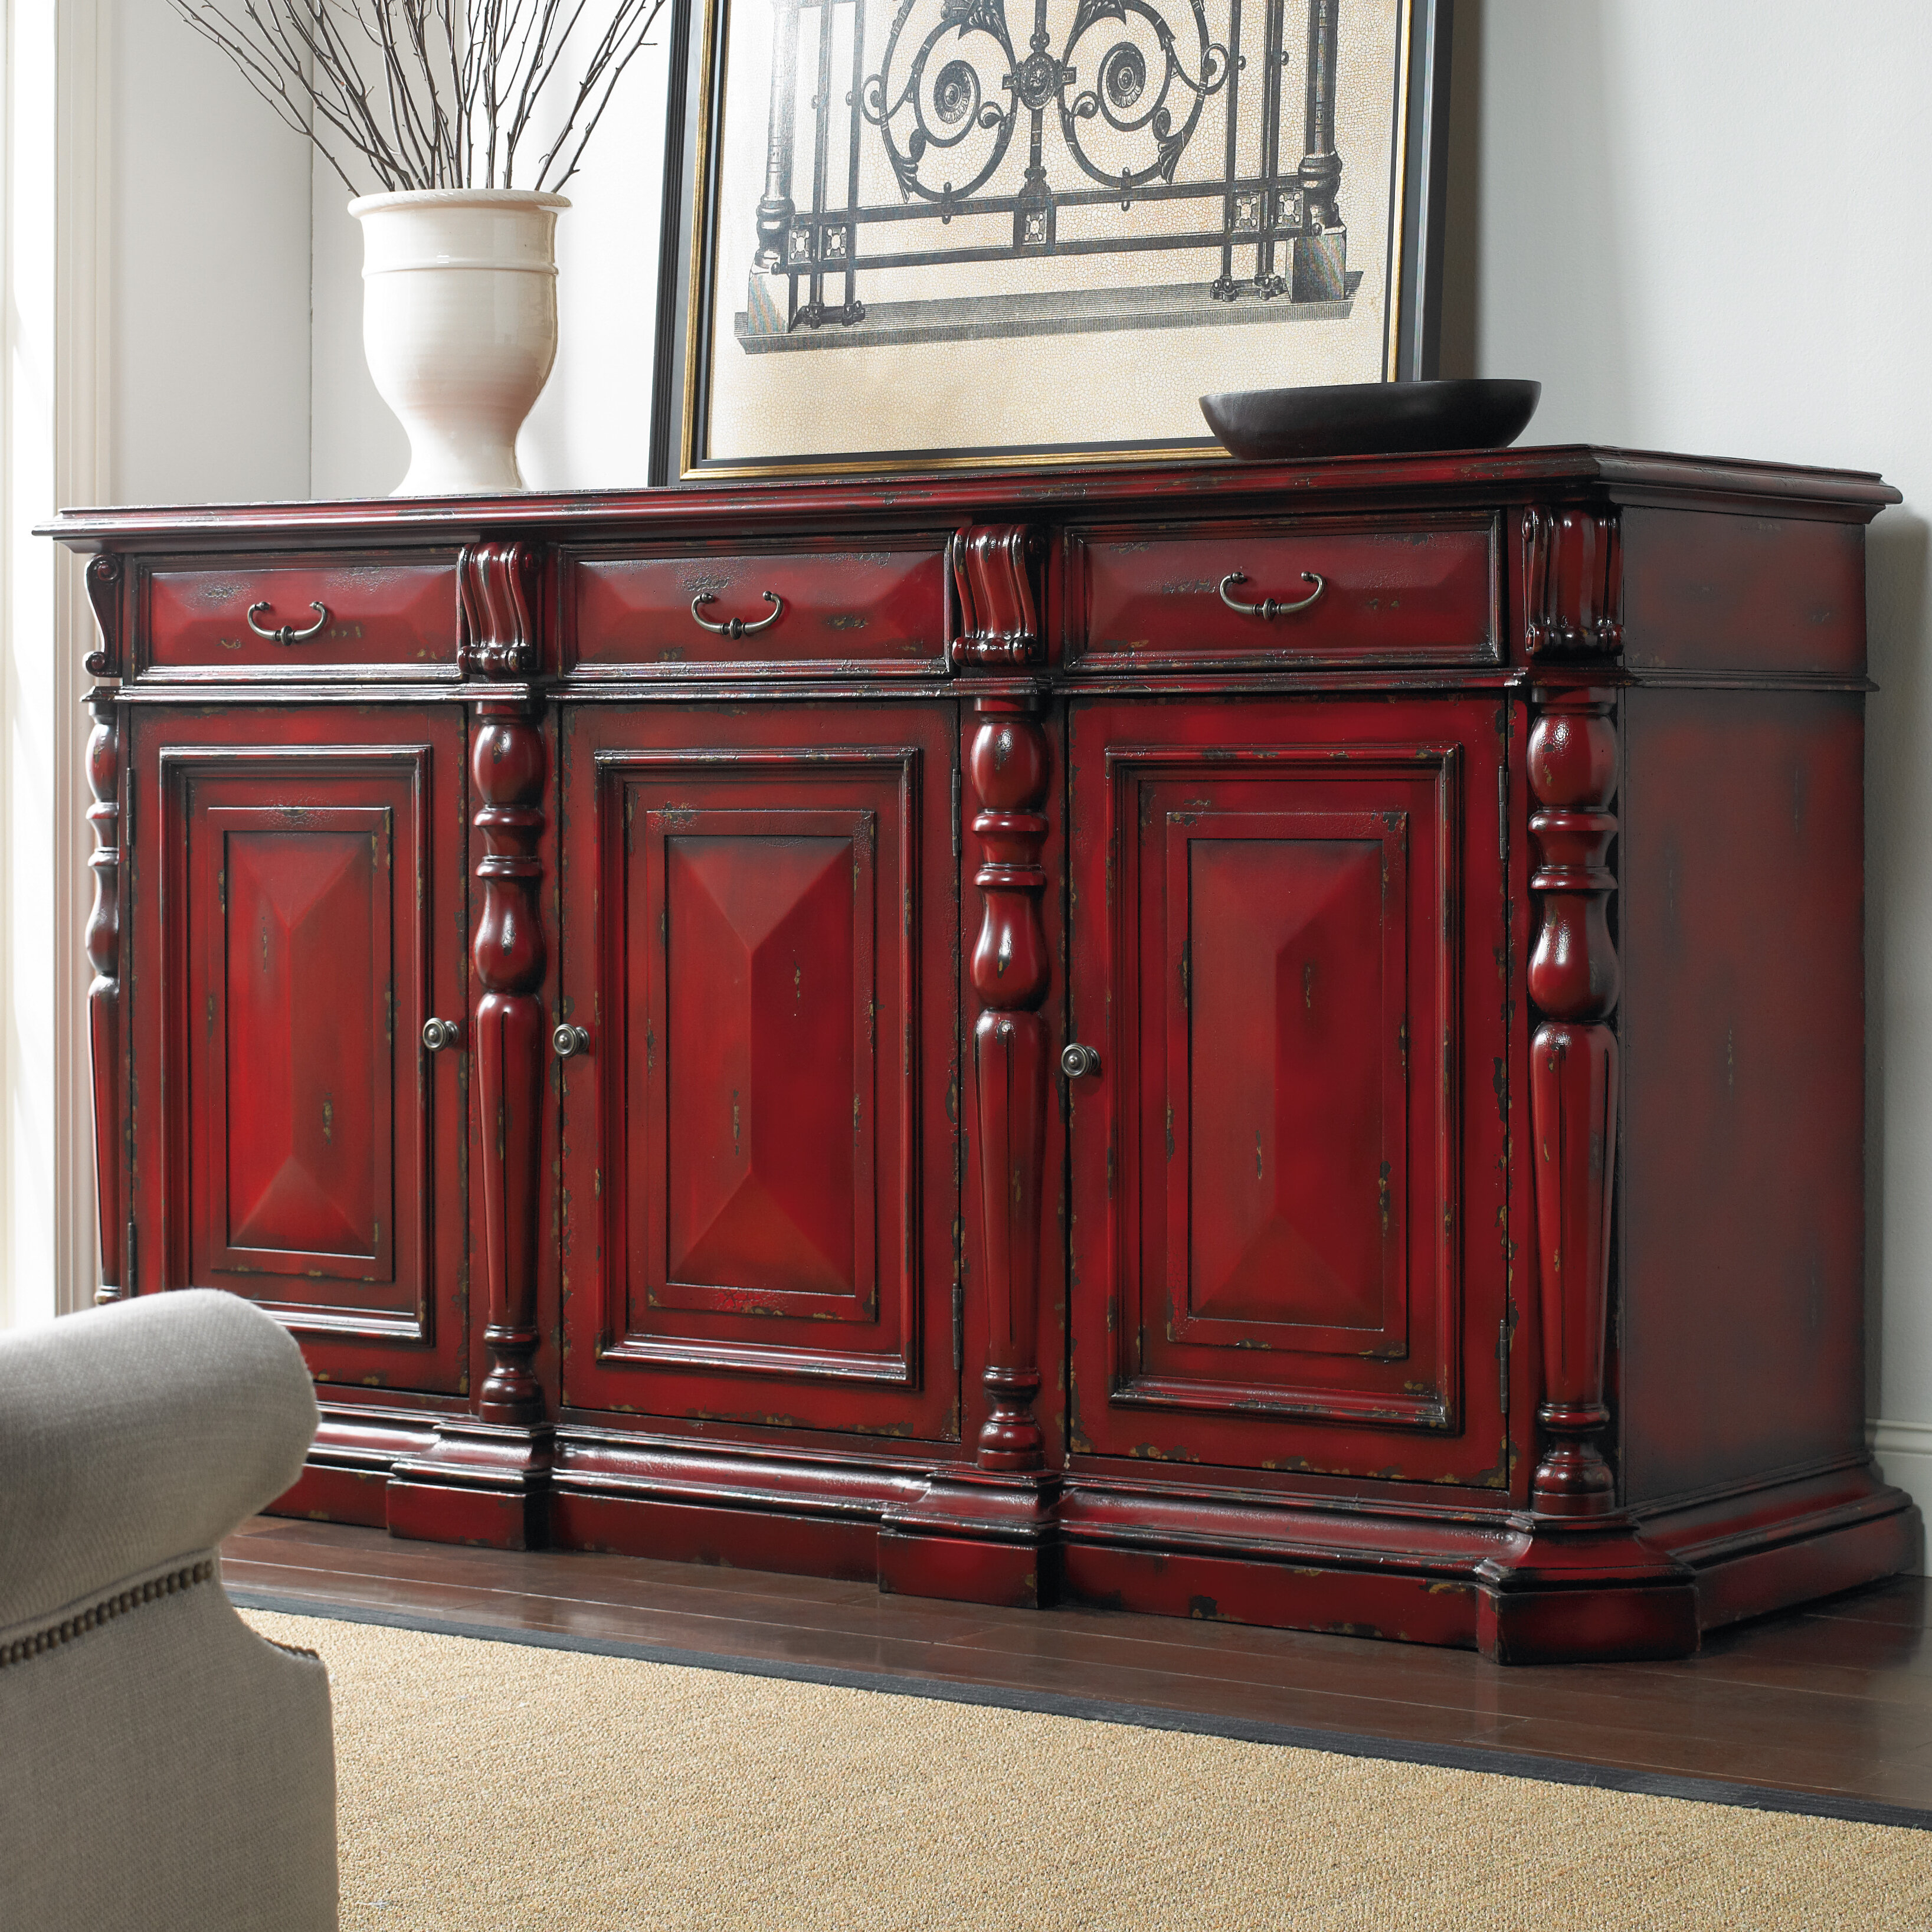 Dulin Sideboard Throughout Hewlett Sideboards (Photo 23 of 30)